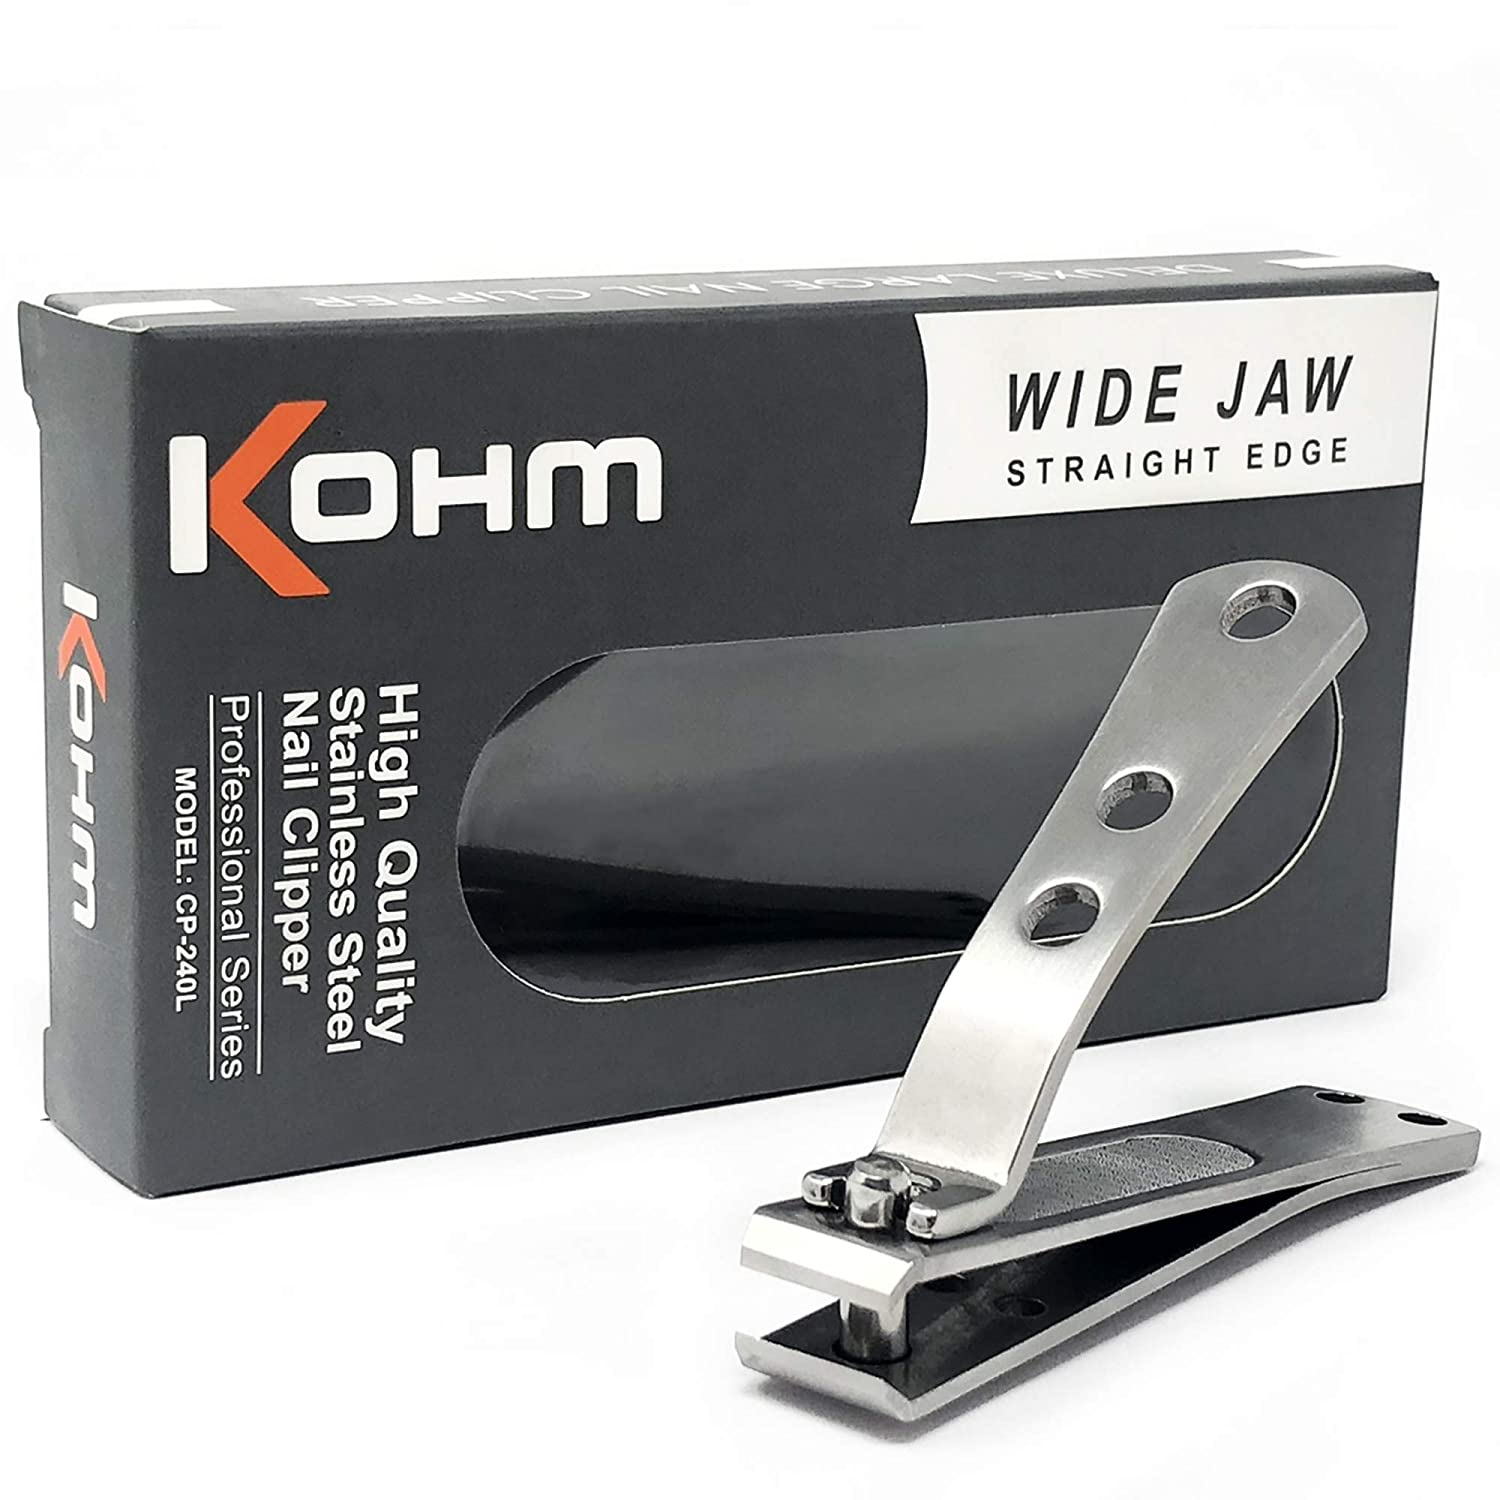 Kohm CP-240L Toenail Clipper for Thick Nails - 4mm Wide Jaw Opening Straight Edge Brushed Stainless Steel